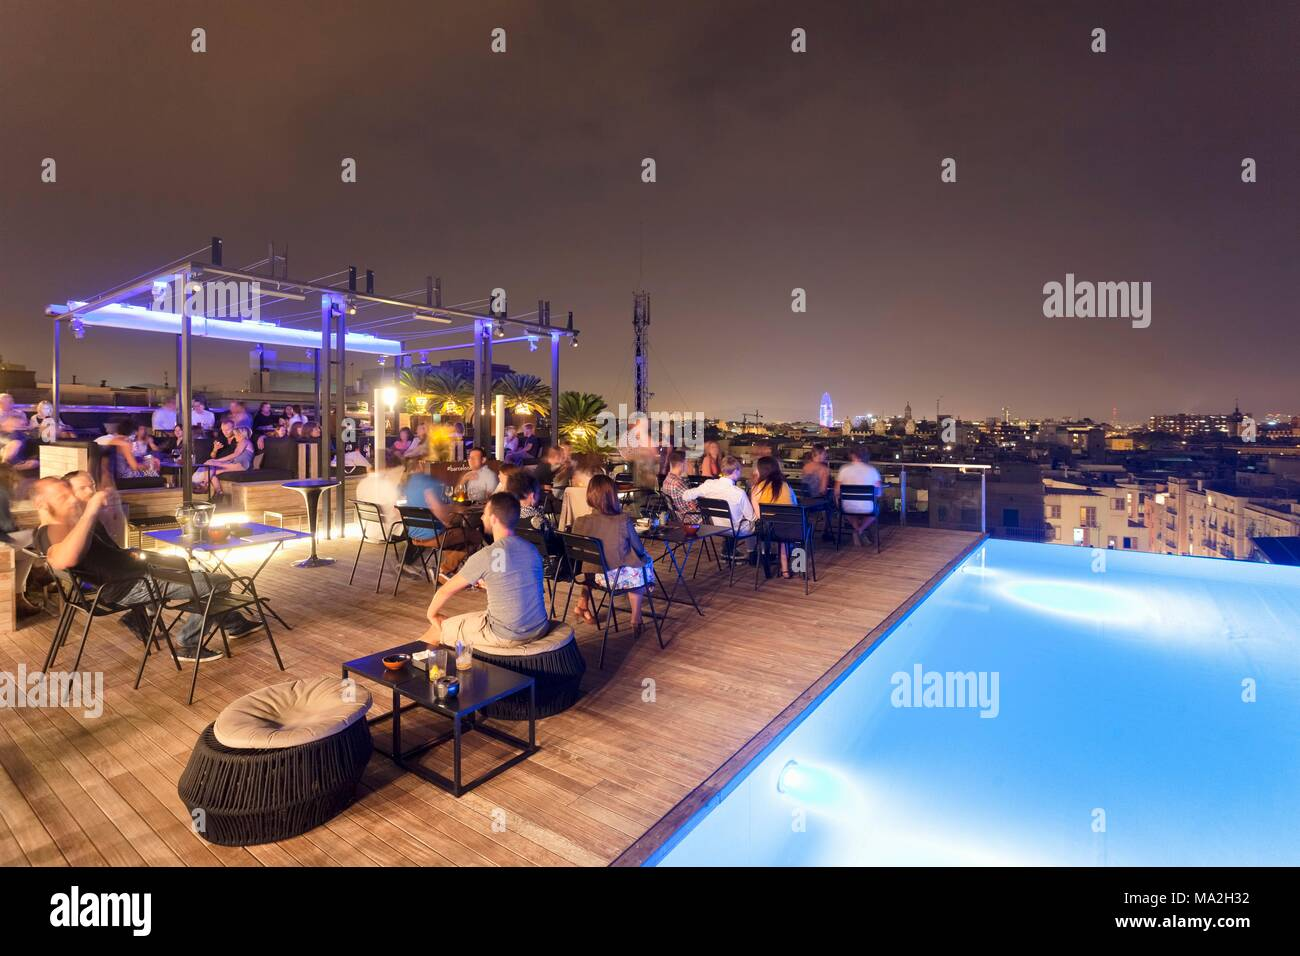 Grand Hotel Central Barcelona A Bar In Barcelona: A Roof Terrace With A View Of The Torre Agbar At The Grand Hotel Central, Catalonia, Spain Stock Photo - Alamy